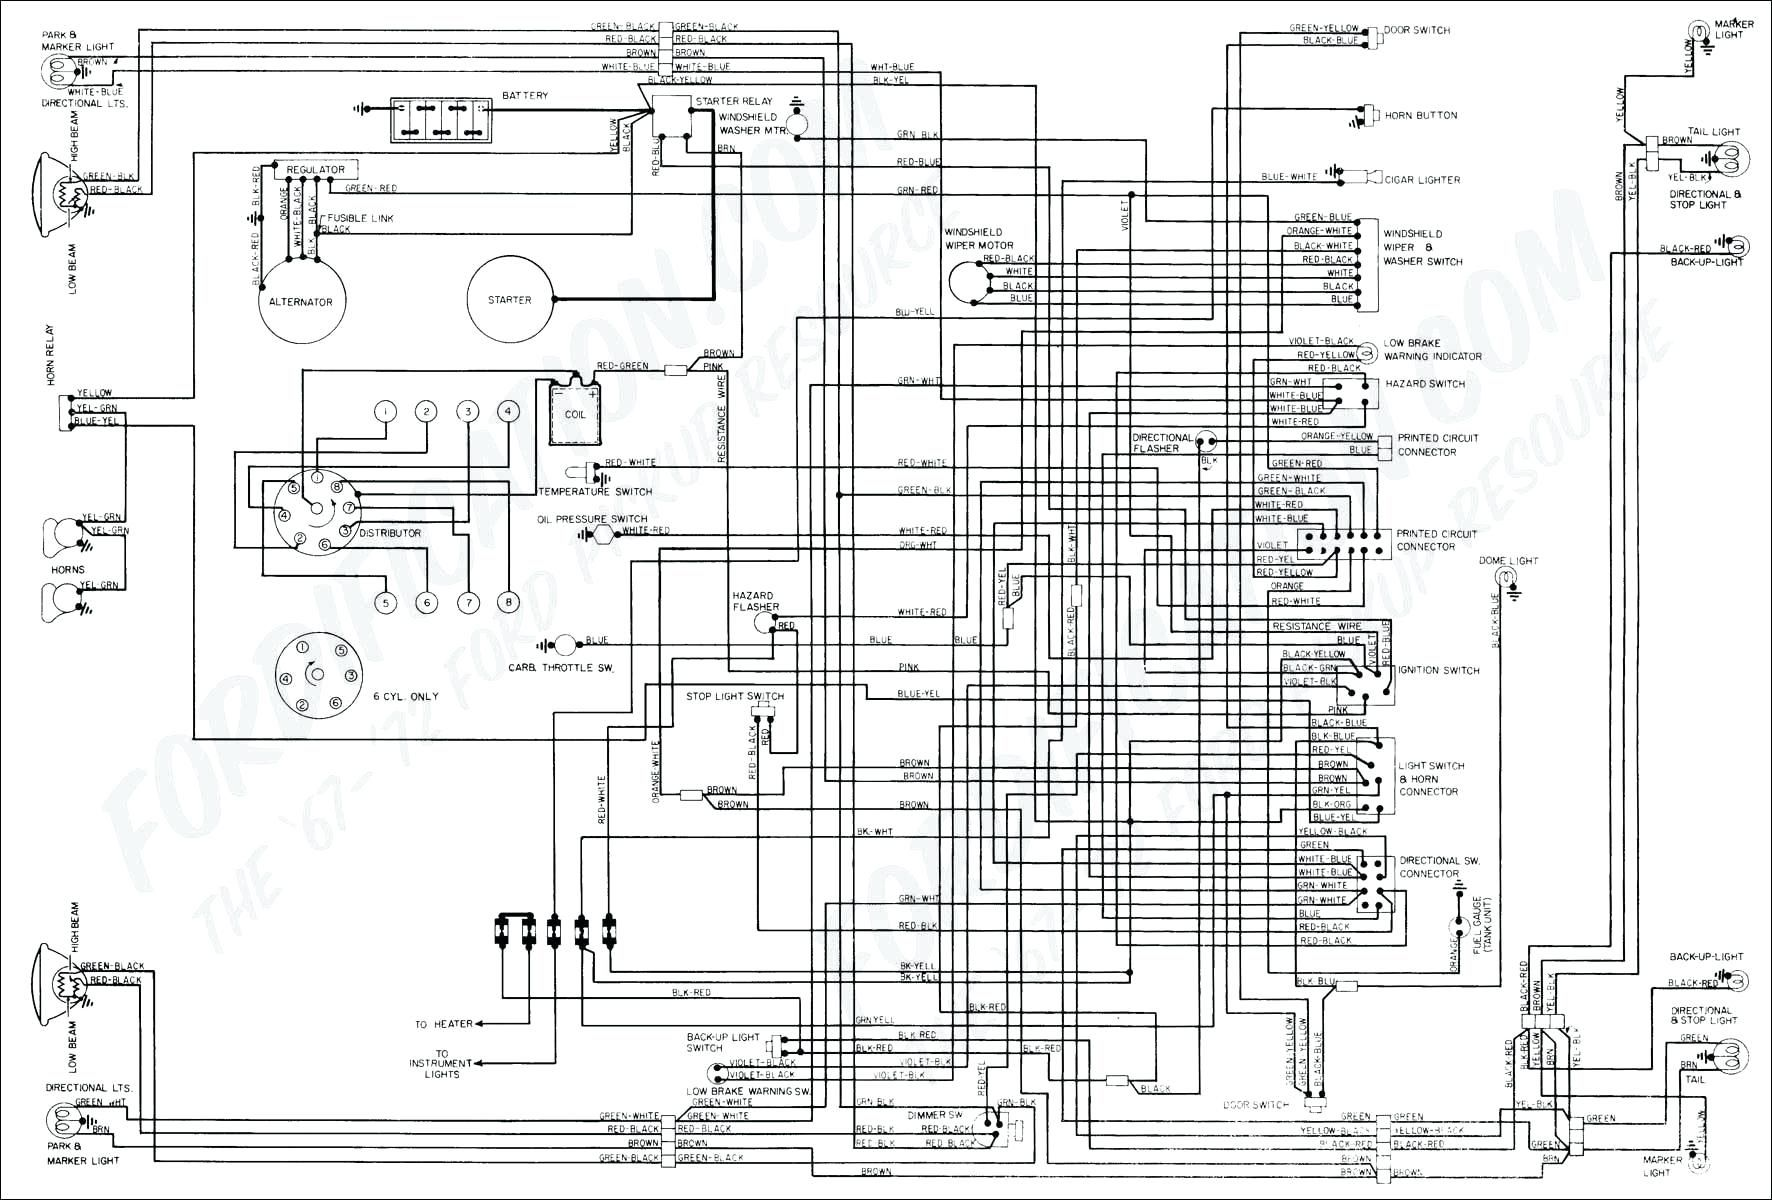 Pin on John Deere 317 Jd Wiring Diagram on jd 430 wiring diagram, jd 318 wiring diagram, jd 455 wiring diagram, jd 265 wiring diagram, jd 317 engine, jd 425 wiring diagram,